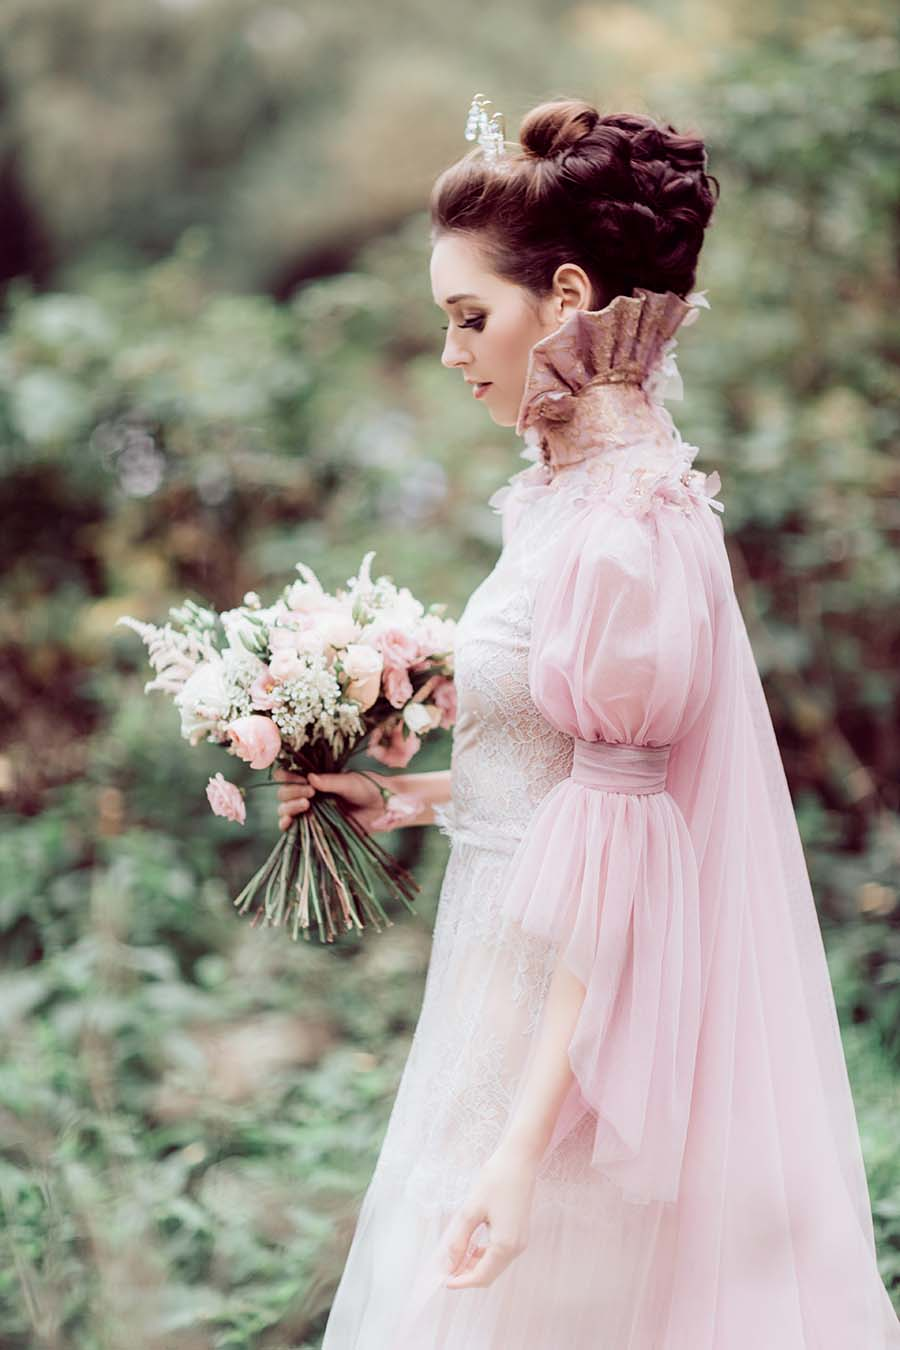 Styled Shoot Utterly Romantic Pink Couture Wedding Dress